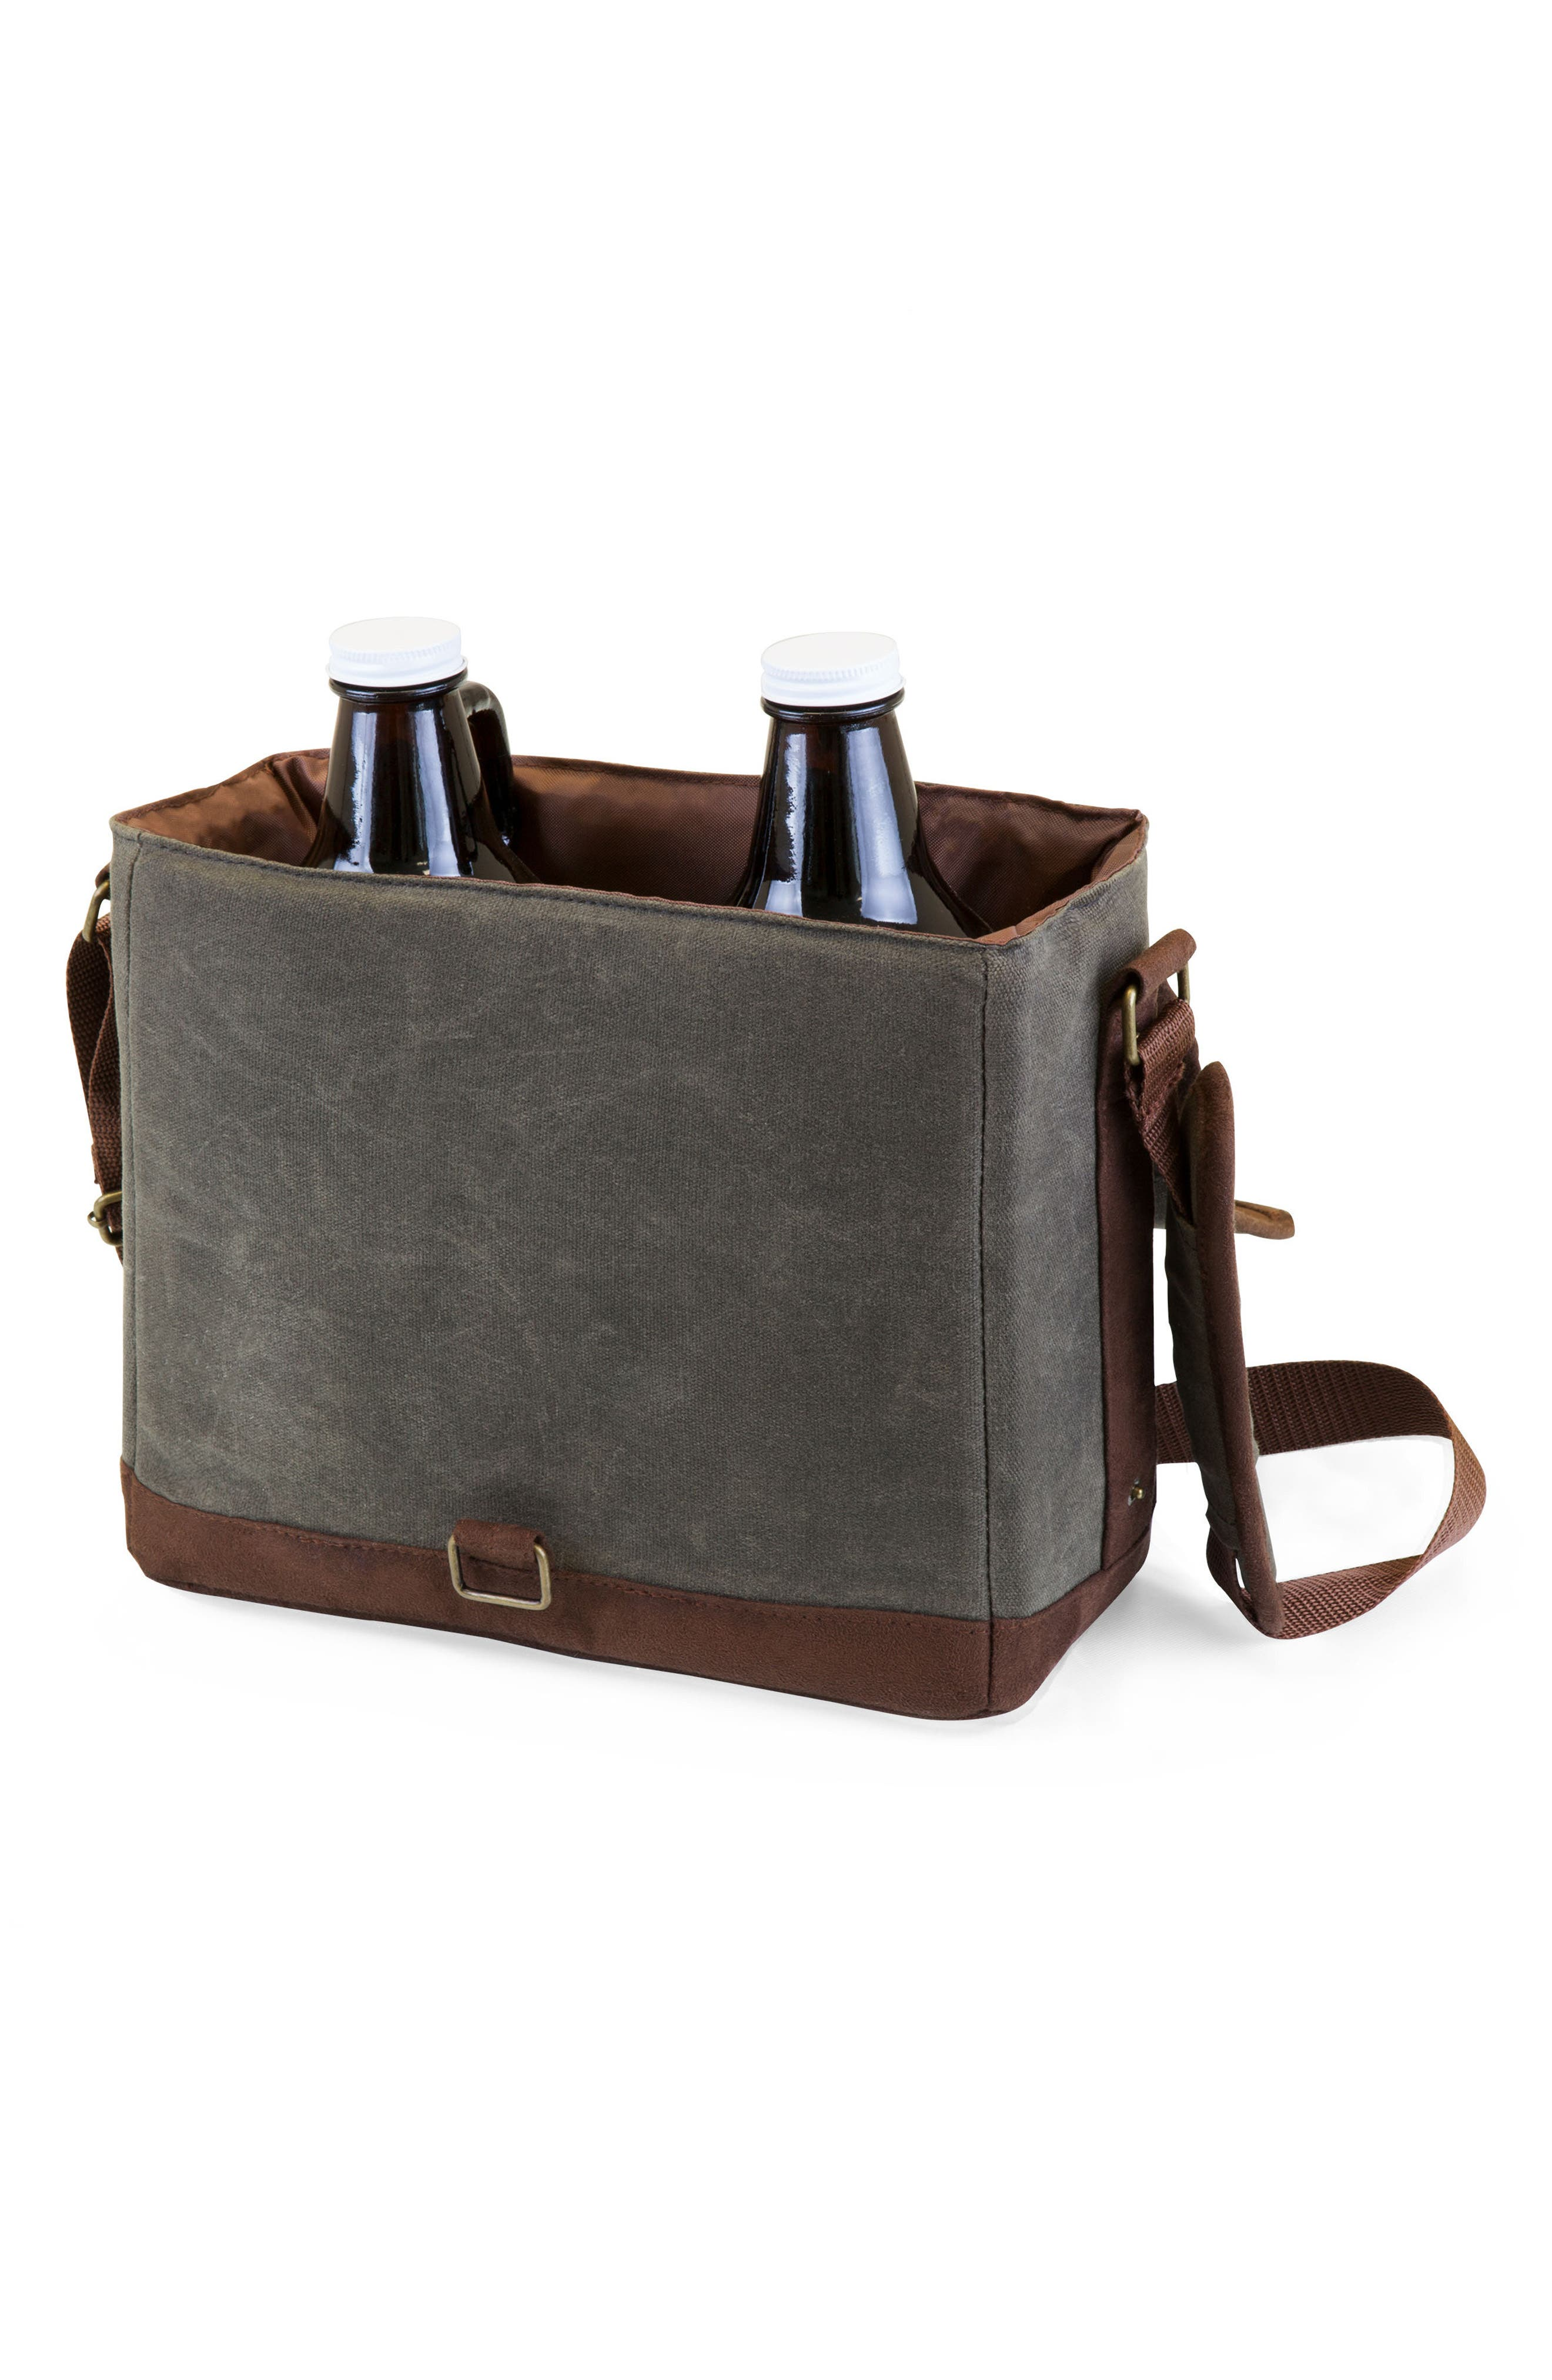 Insulated Double Growler Tote,                             Alternate thumbnail 2, color,                             Green/ Brown